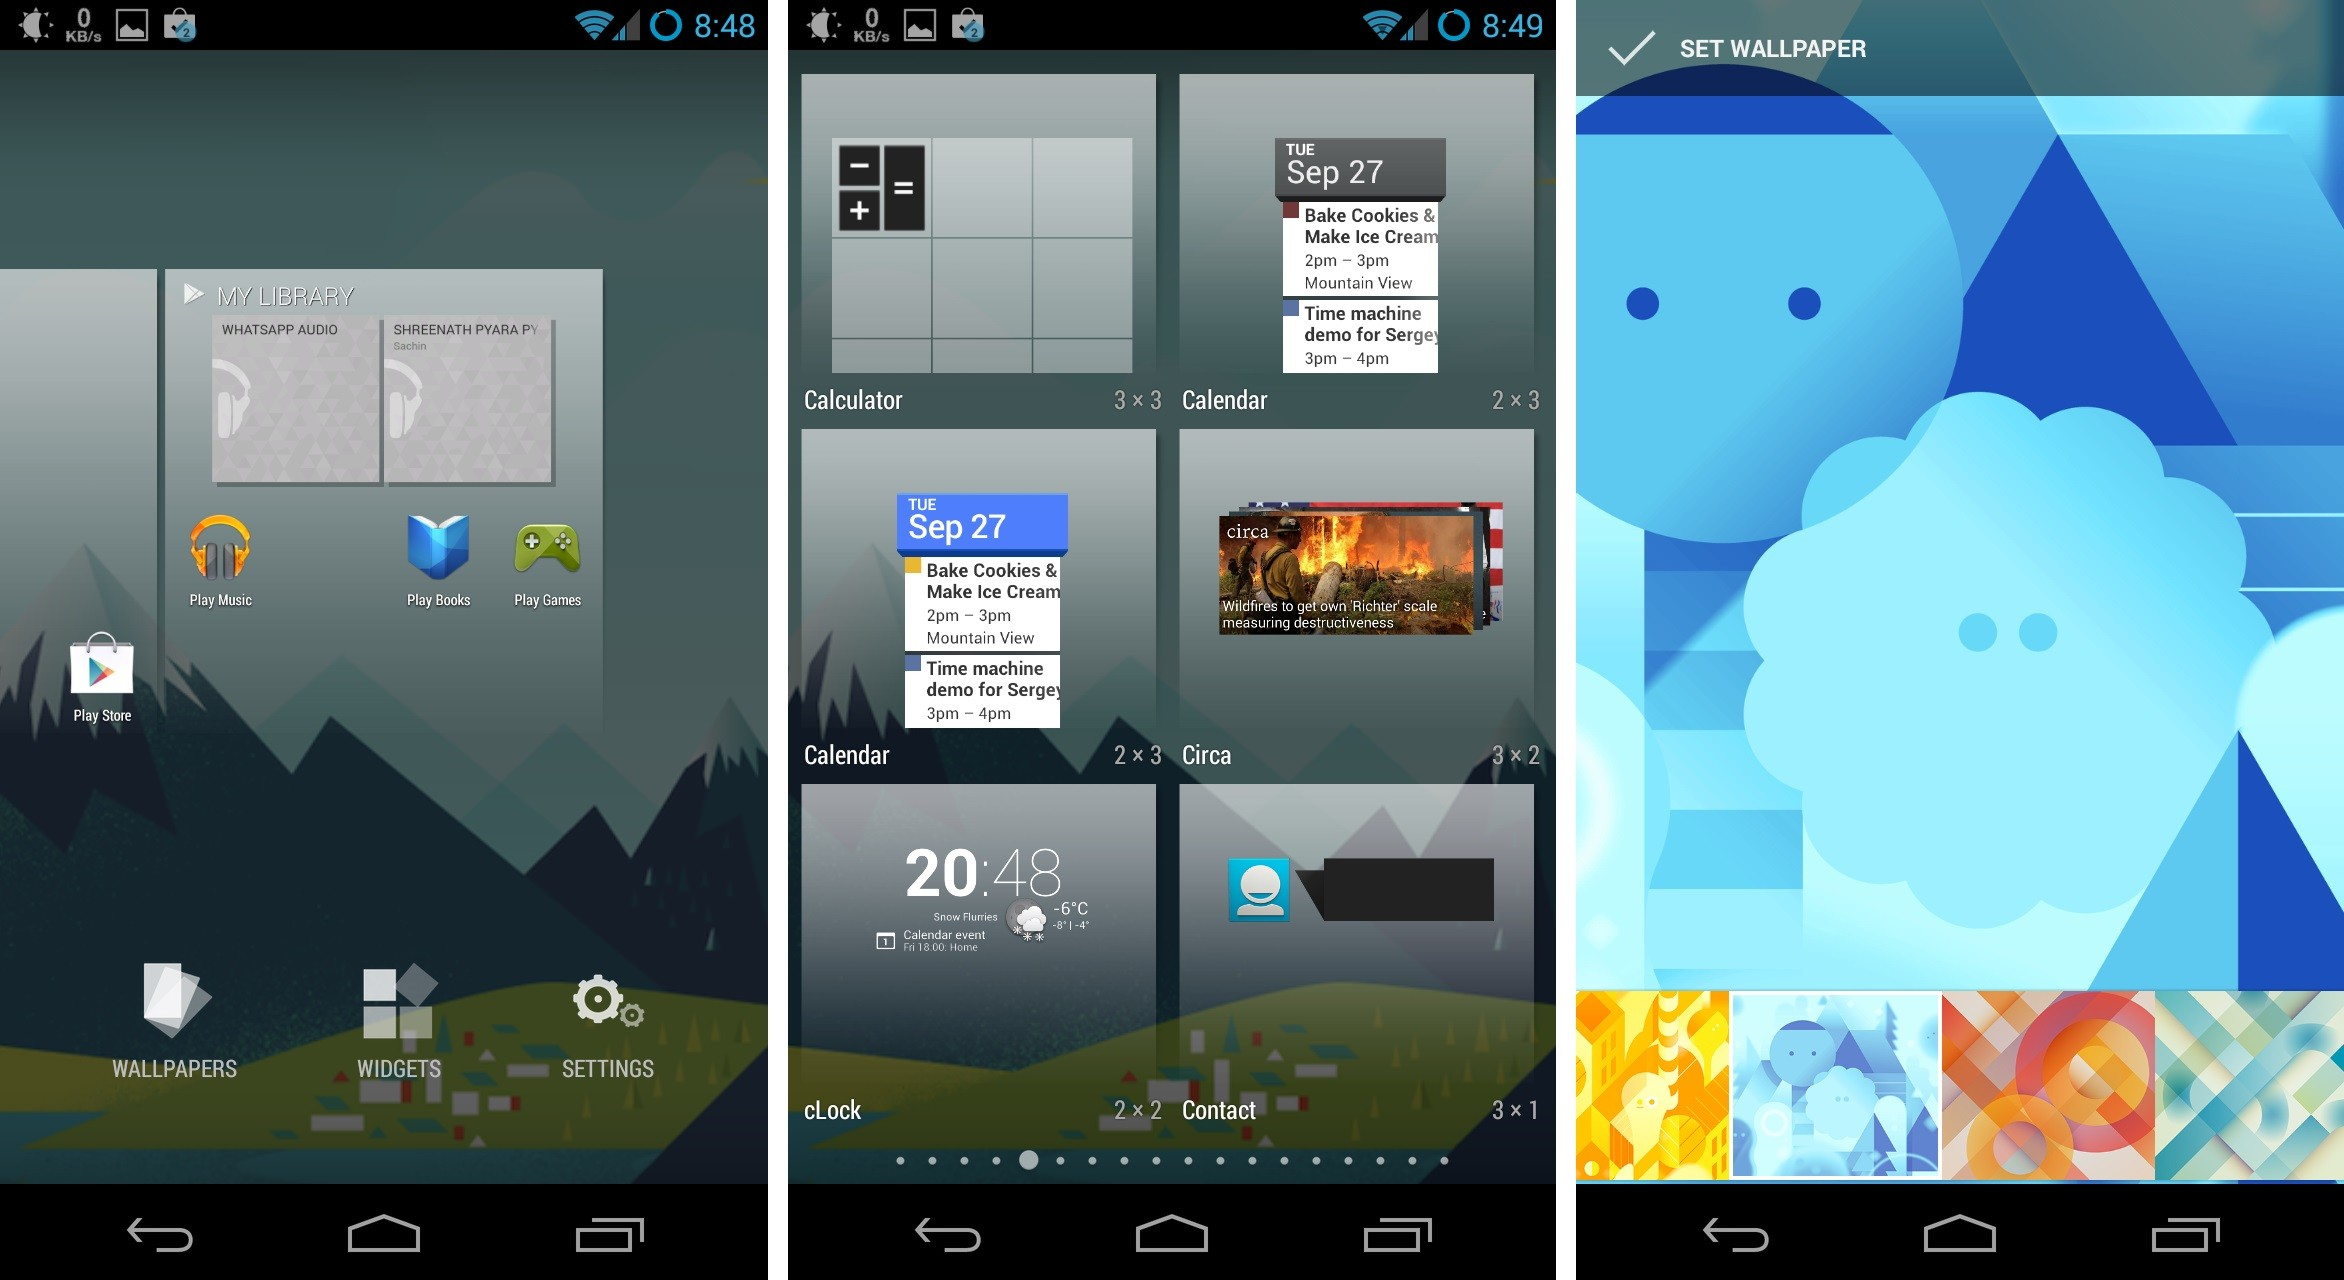 Android 4.4 Launcher (New Google Home)